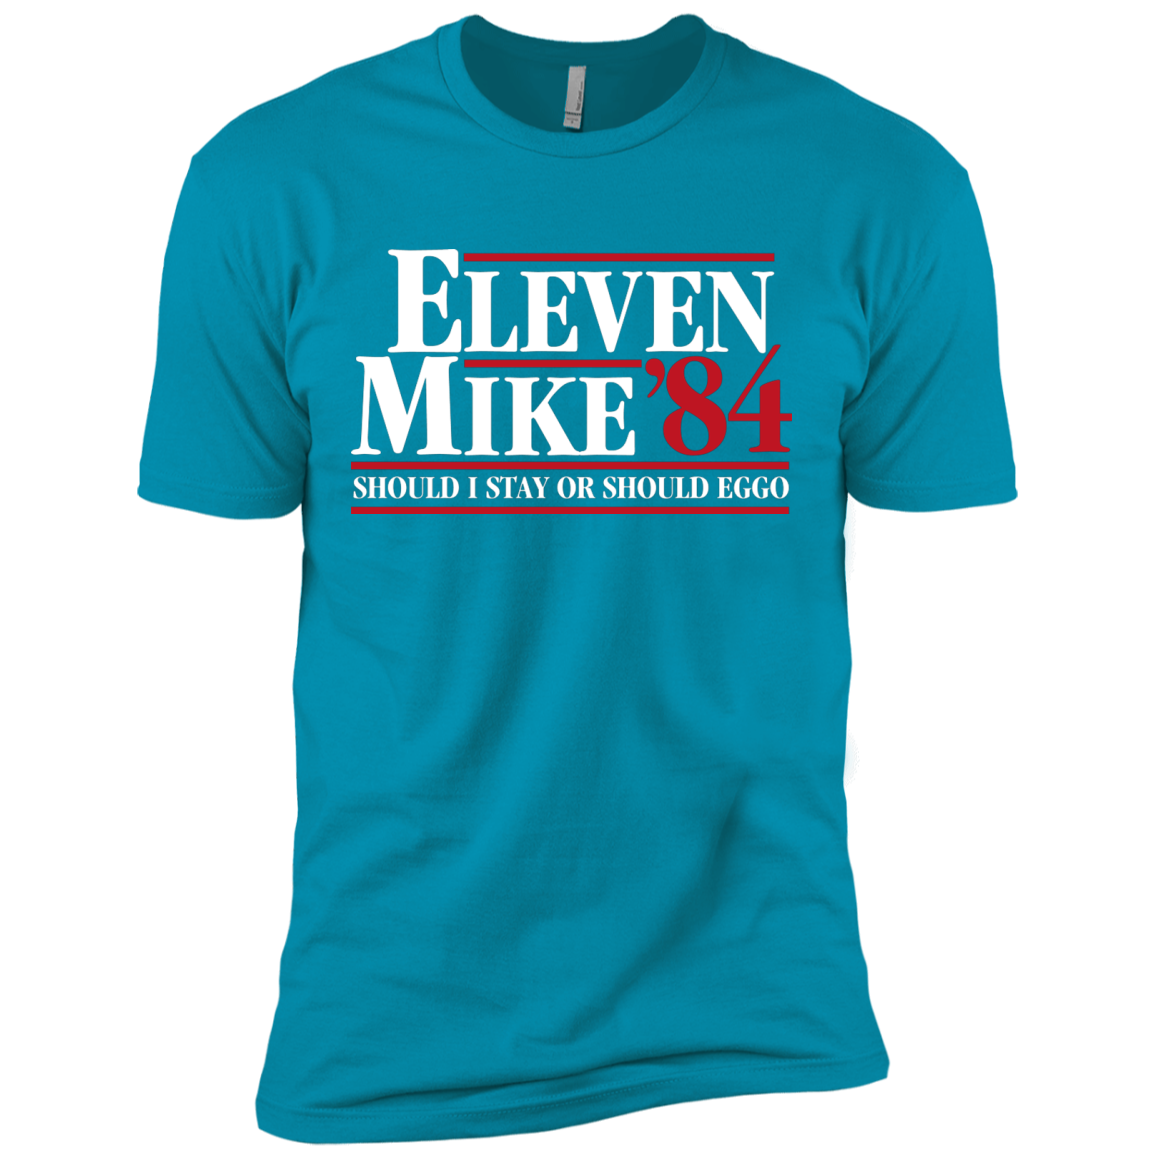 Eleven Mike 84 - Should I Stay or Should Eggo Men's Premium T-Shirt